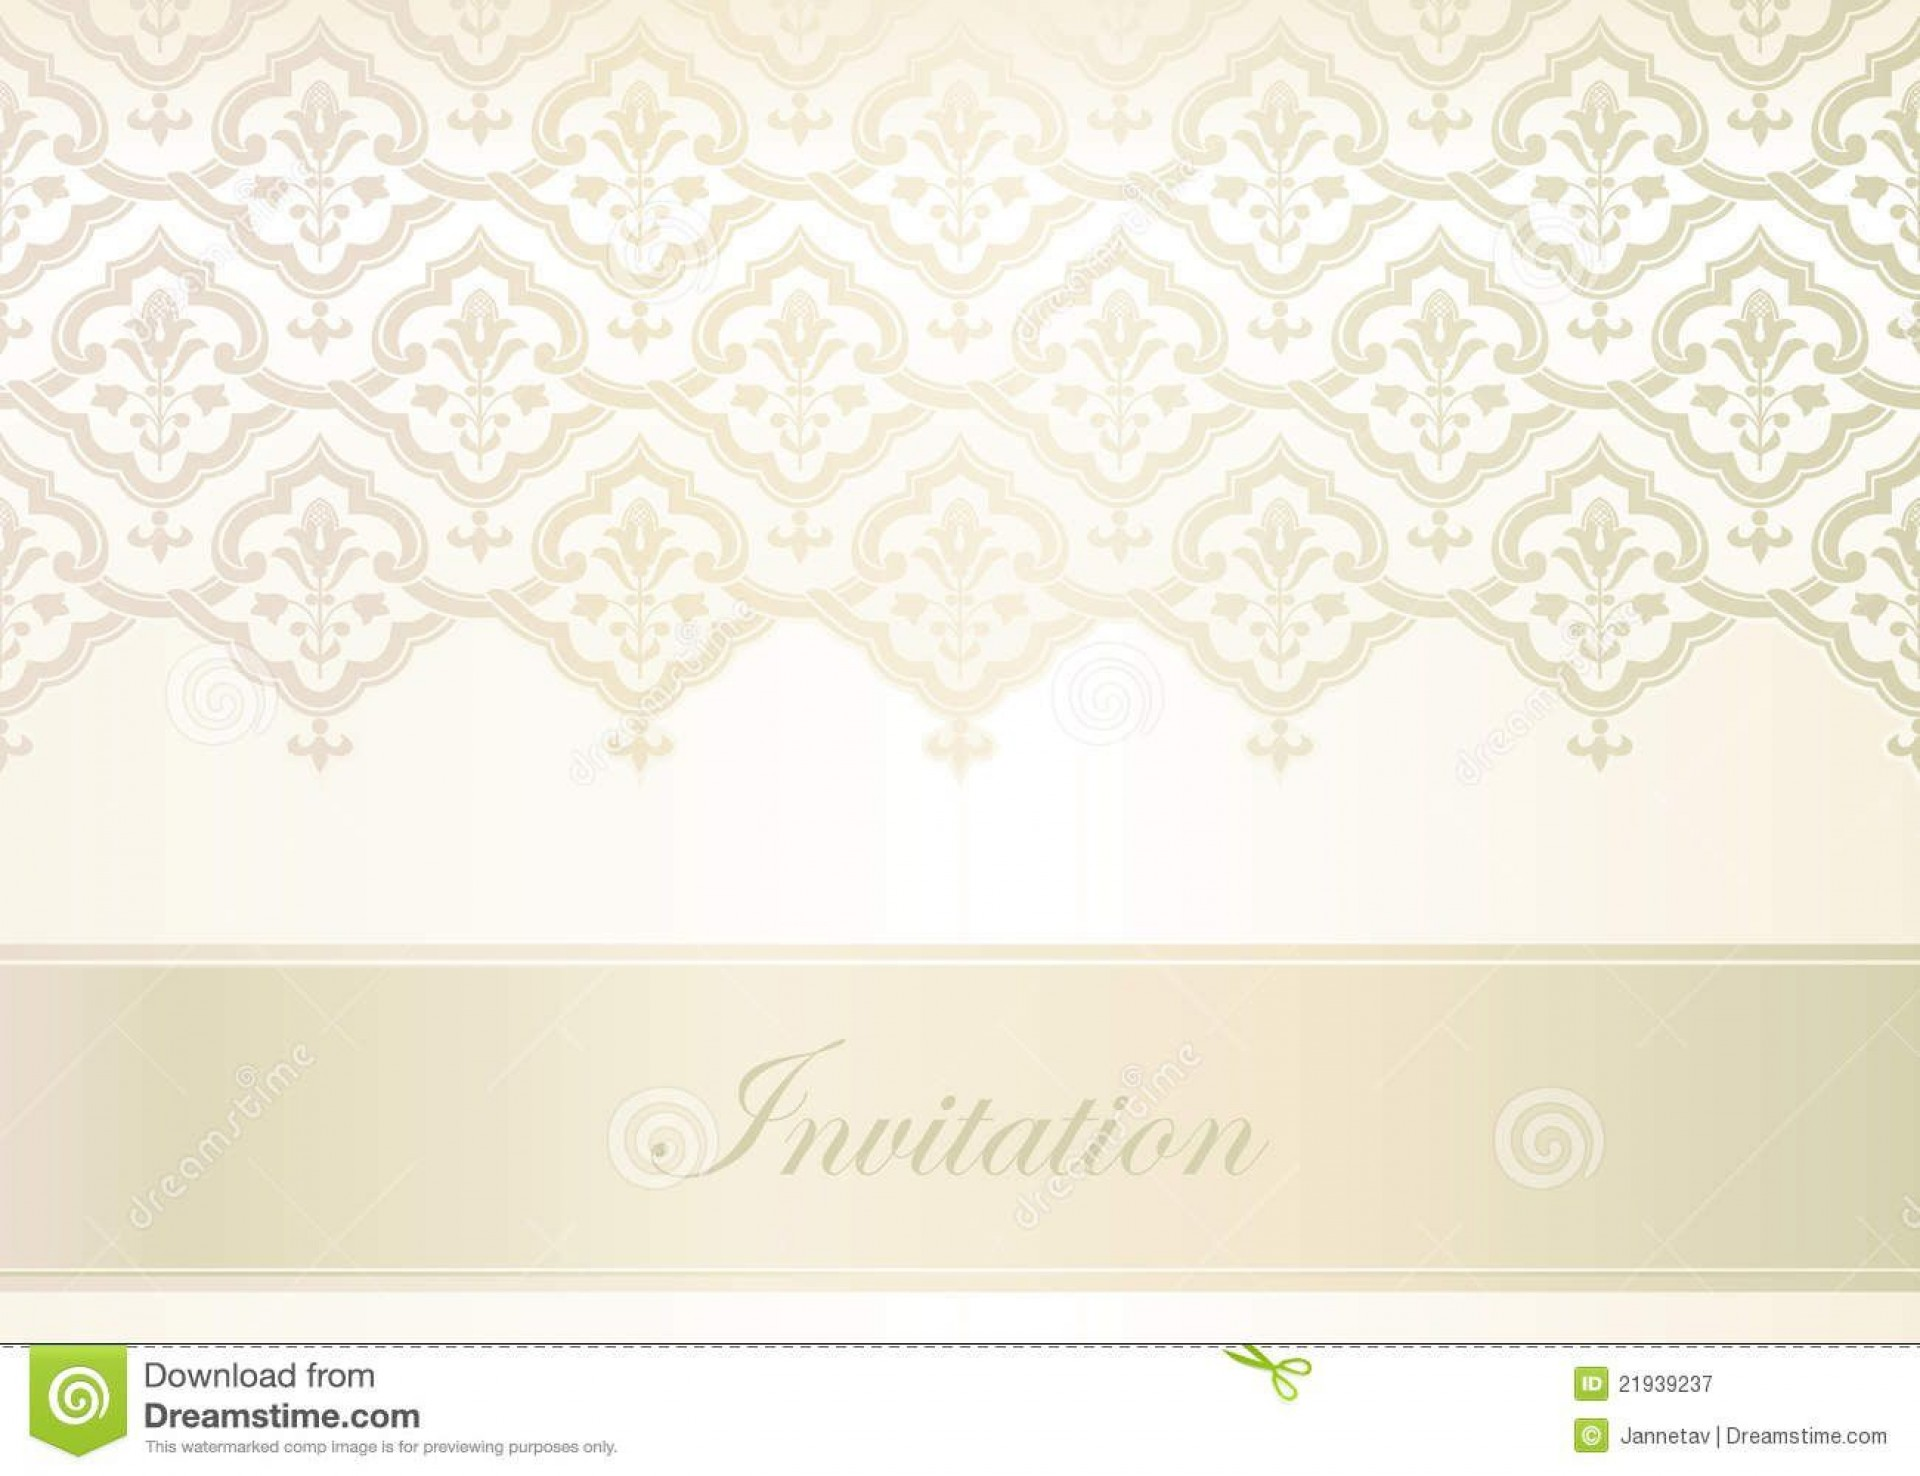 009 Astounding Free Download Invitation Card Format High Definition  Birthday Tamil Marriage In Word1920